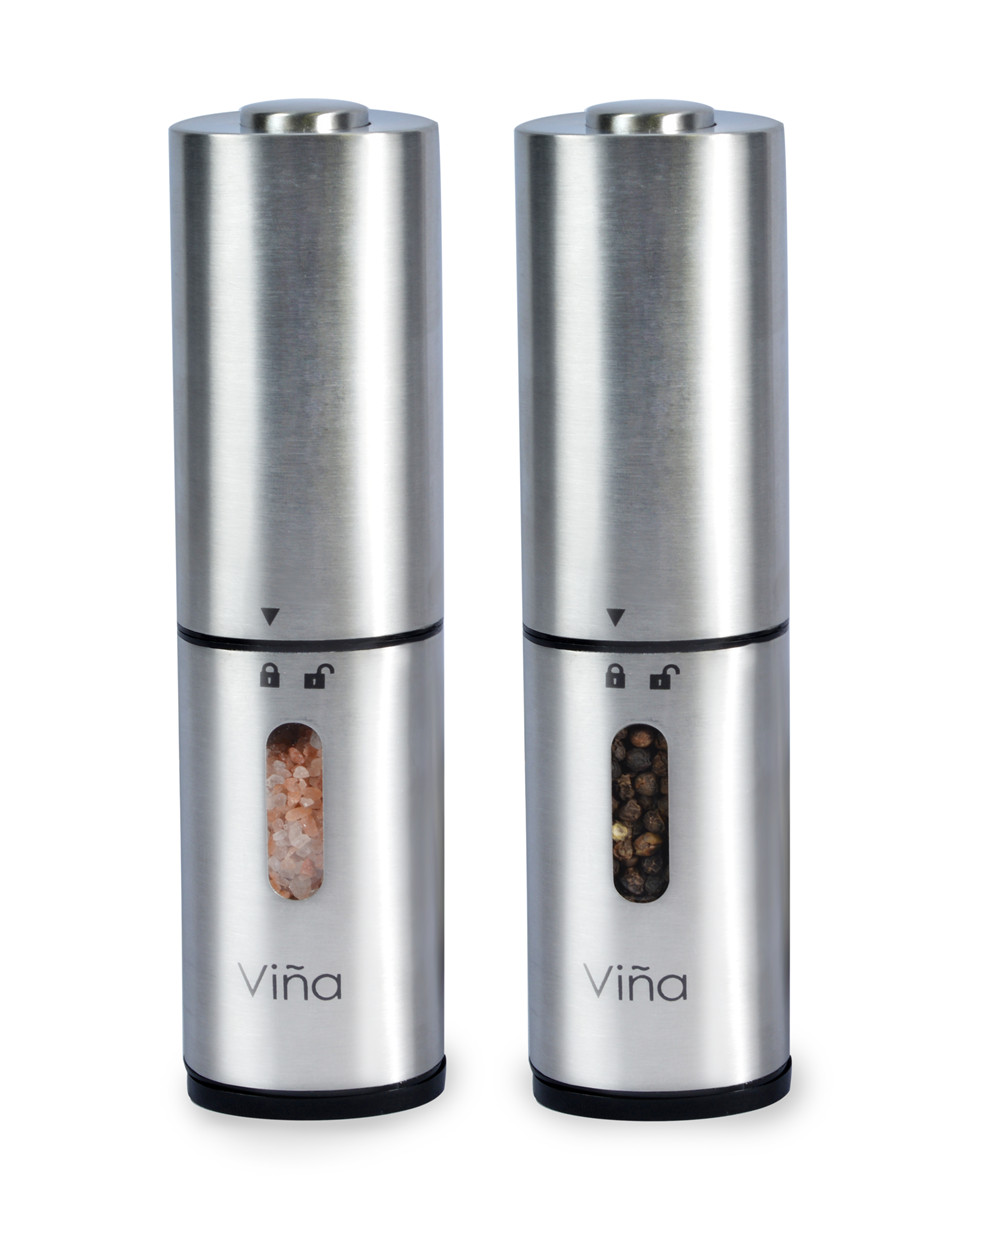 Pack of 2 Vina Electric Automatic Stainless Steel Salt and Pepper